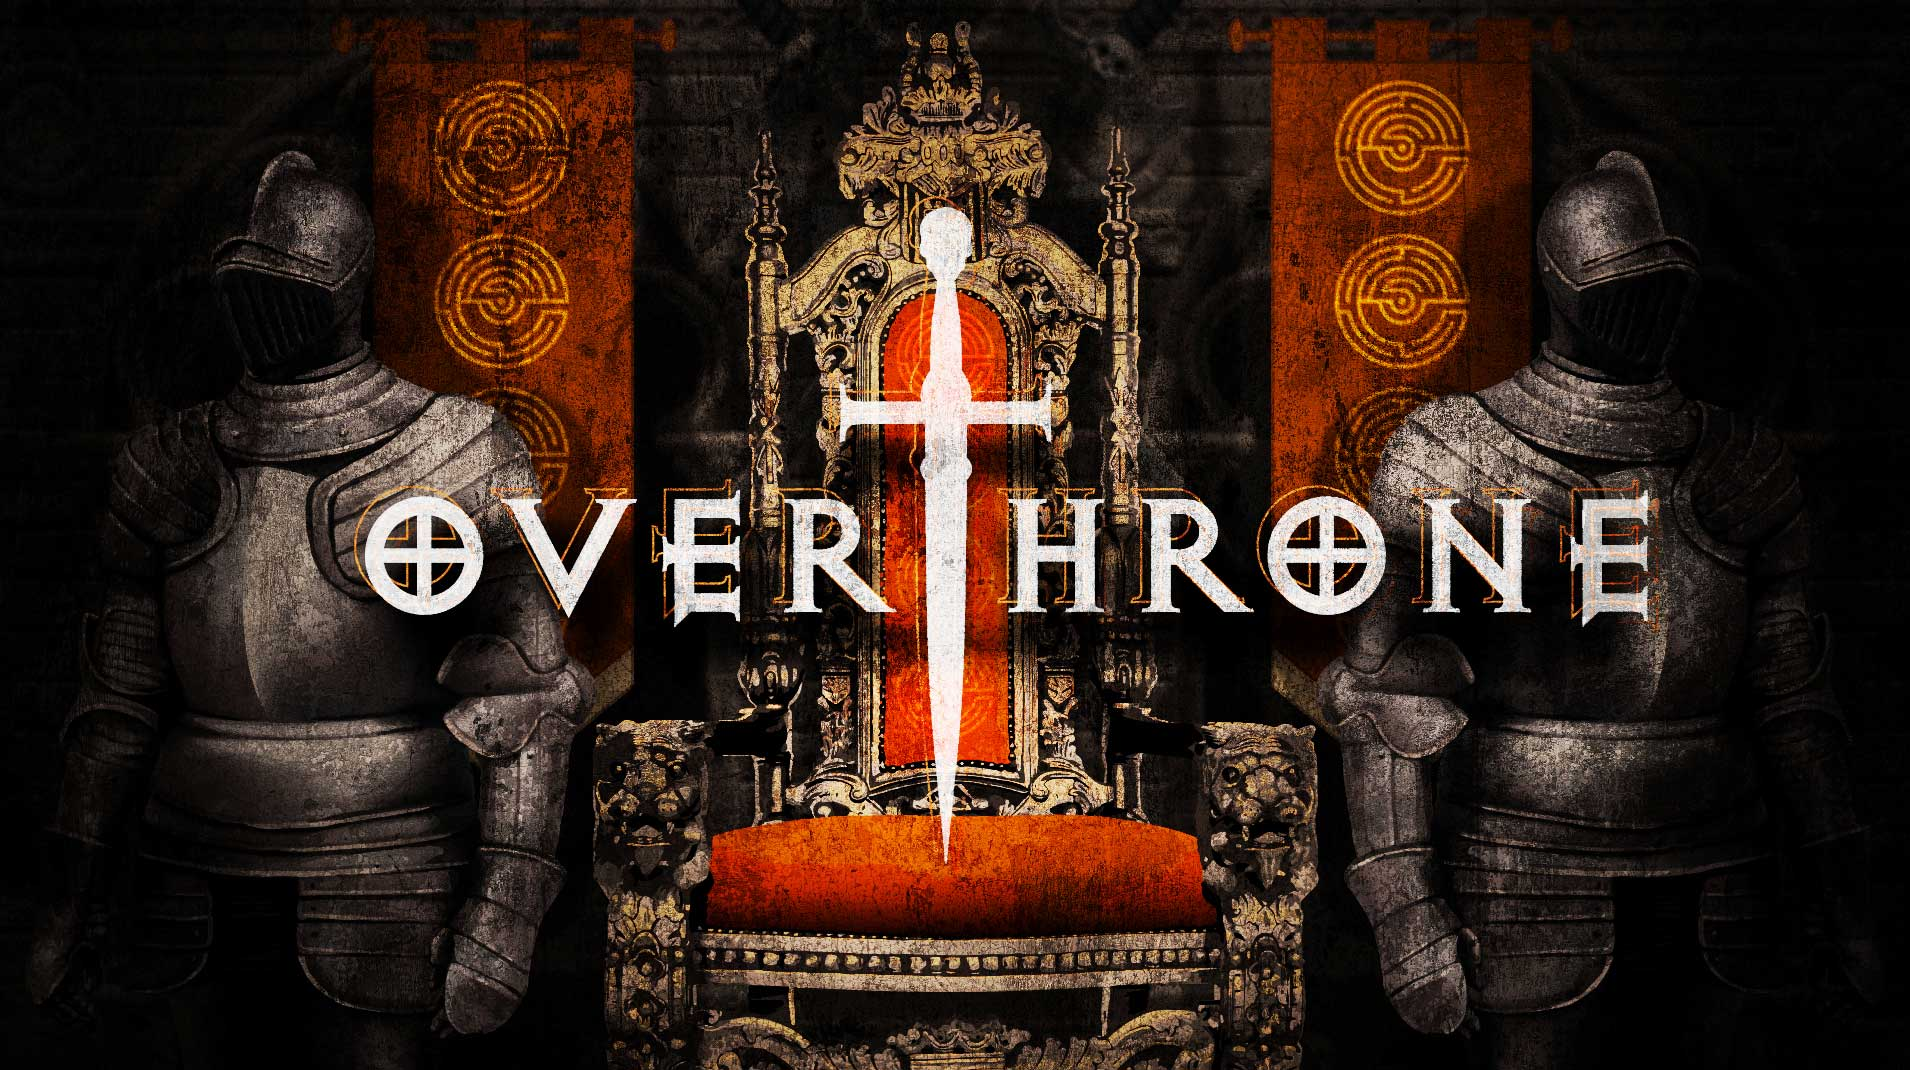 overthrone - SHEPHERD'S BUSH - WEST LONDONThe King is dead, long live the King!With no natural successor to the King the throne is up for grabs. He who raises the legendary Sword of Britain will take the throne.Legend has it that the wily old King has hidden the sword within the castle. You are first onto the scene, explore the castle and retrieve the sword before the pretenders arrive!